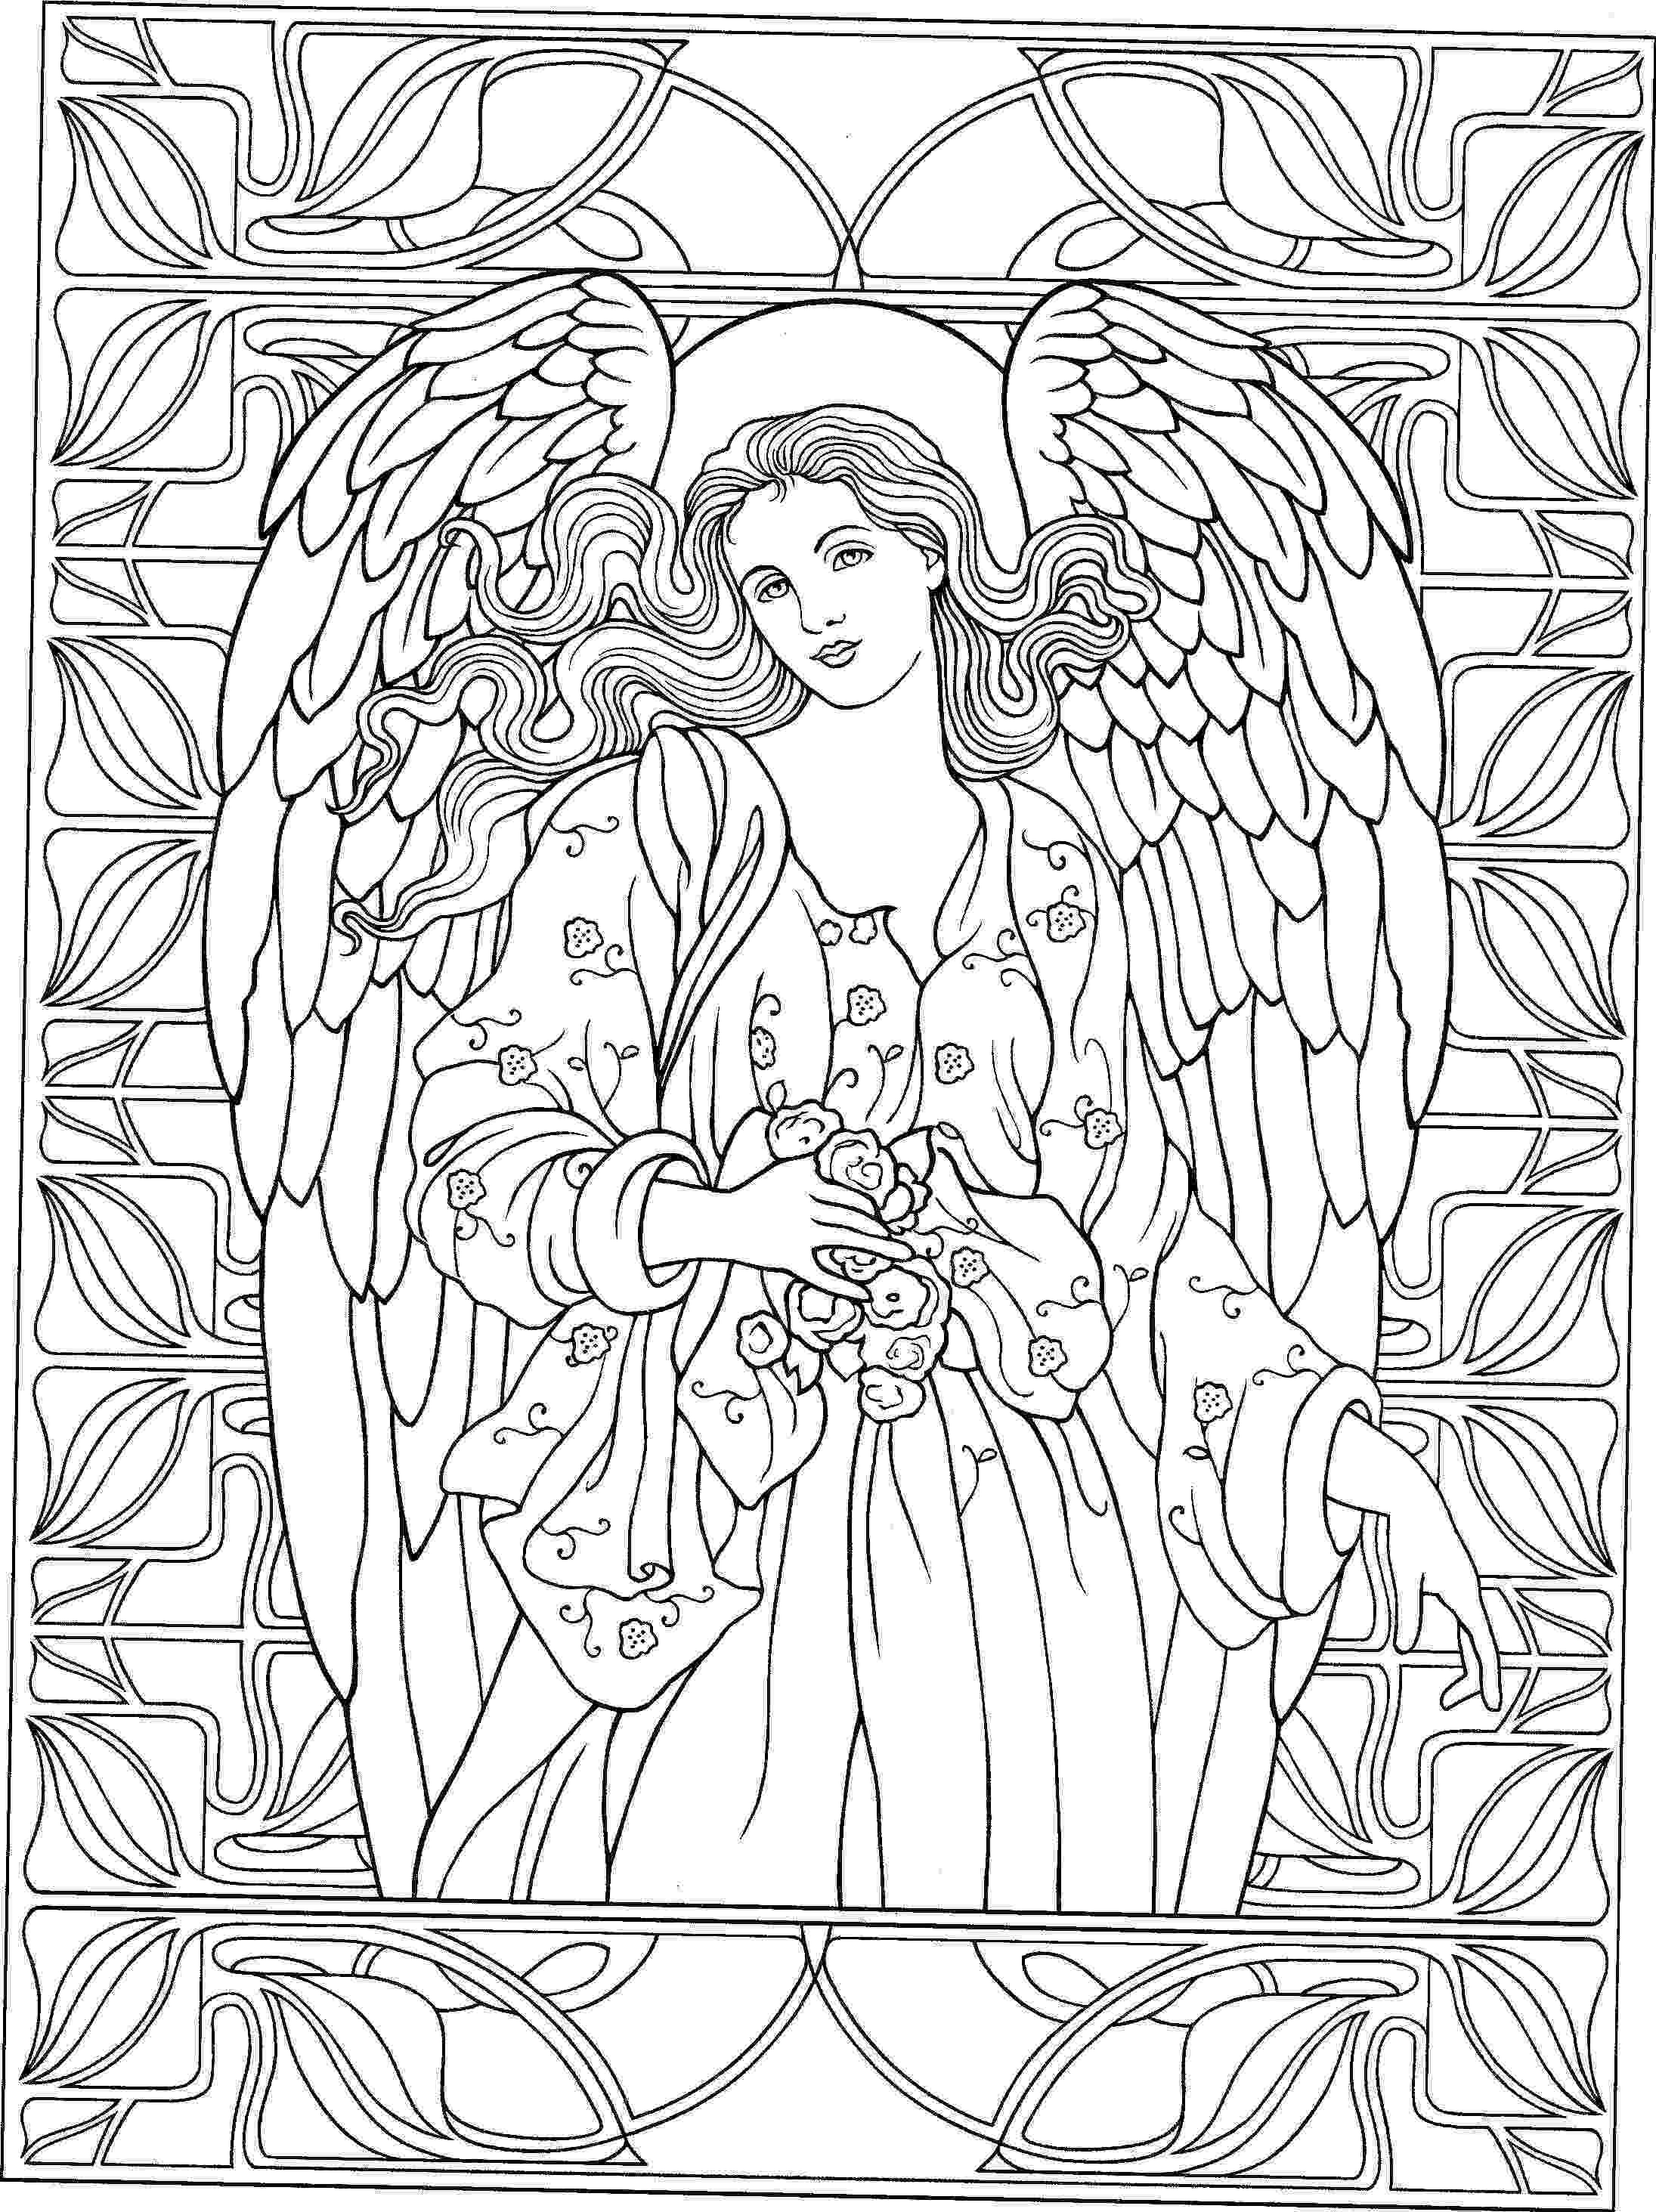 coloring pages of angels 3823e3973b2d9354e5eb55074cc59aa3jpg 21912927 Женский pages angels of coloring